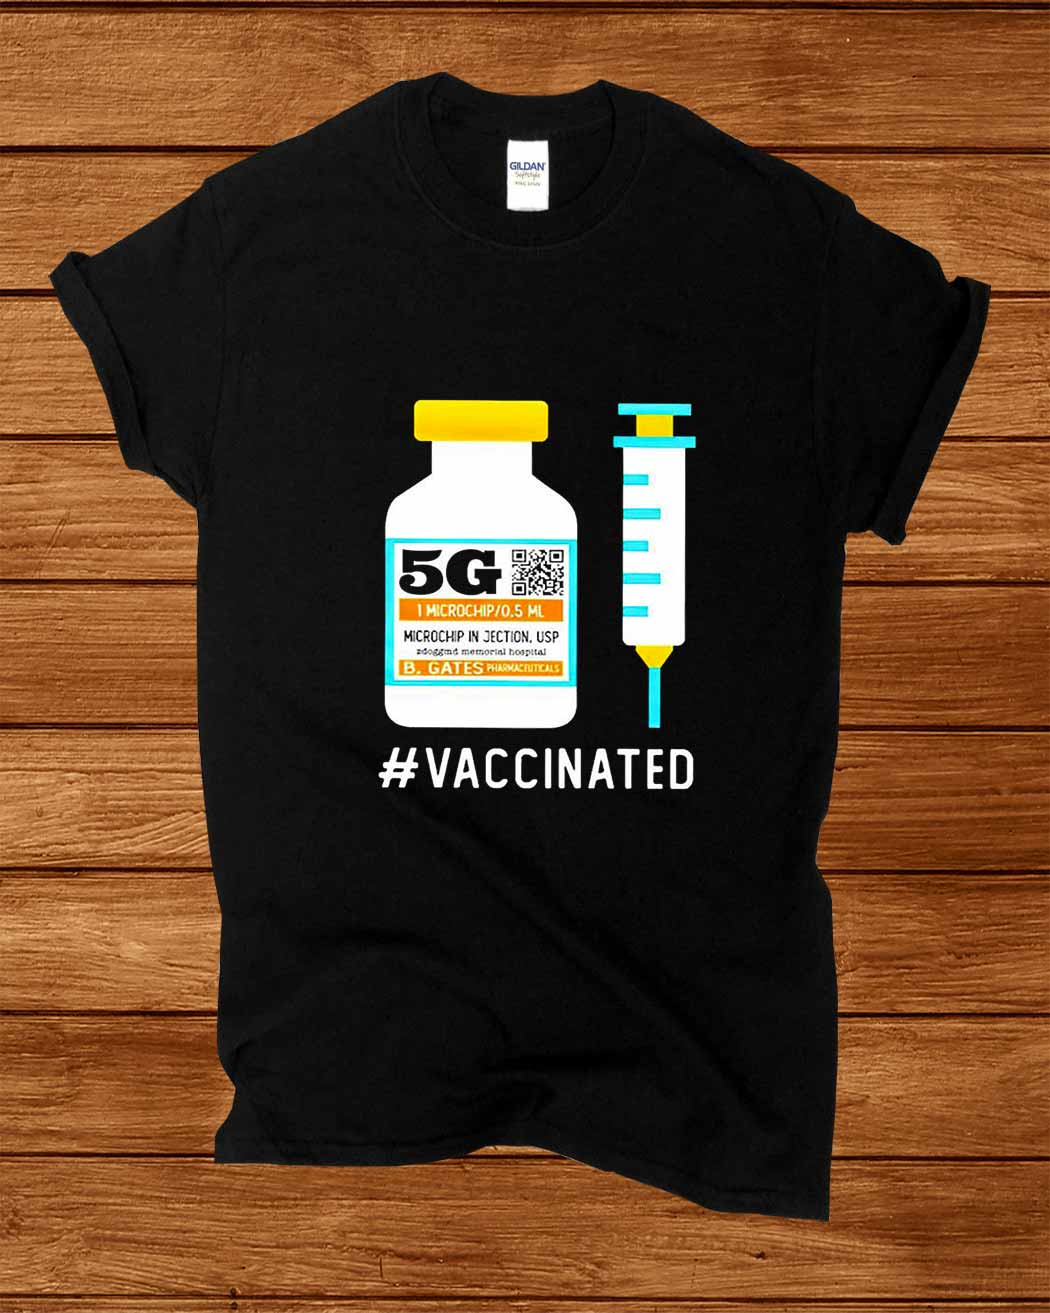 5g Vaccinated